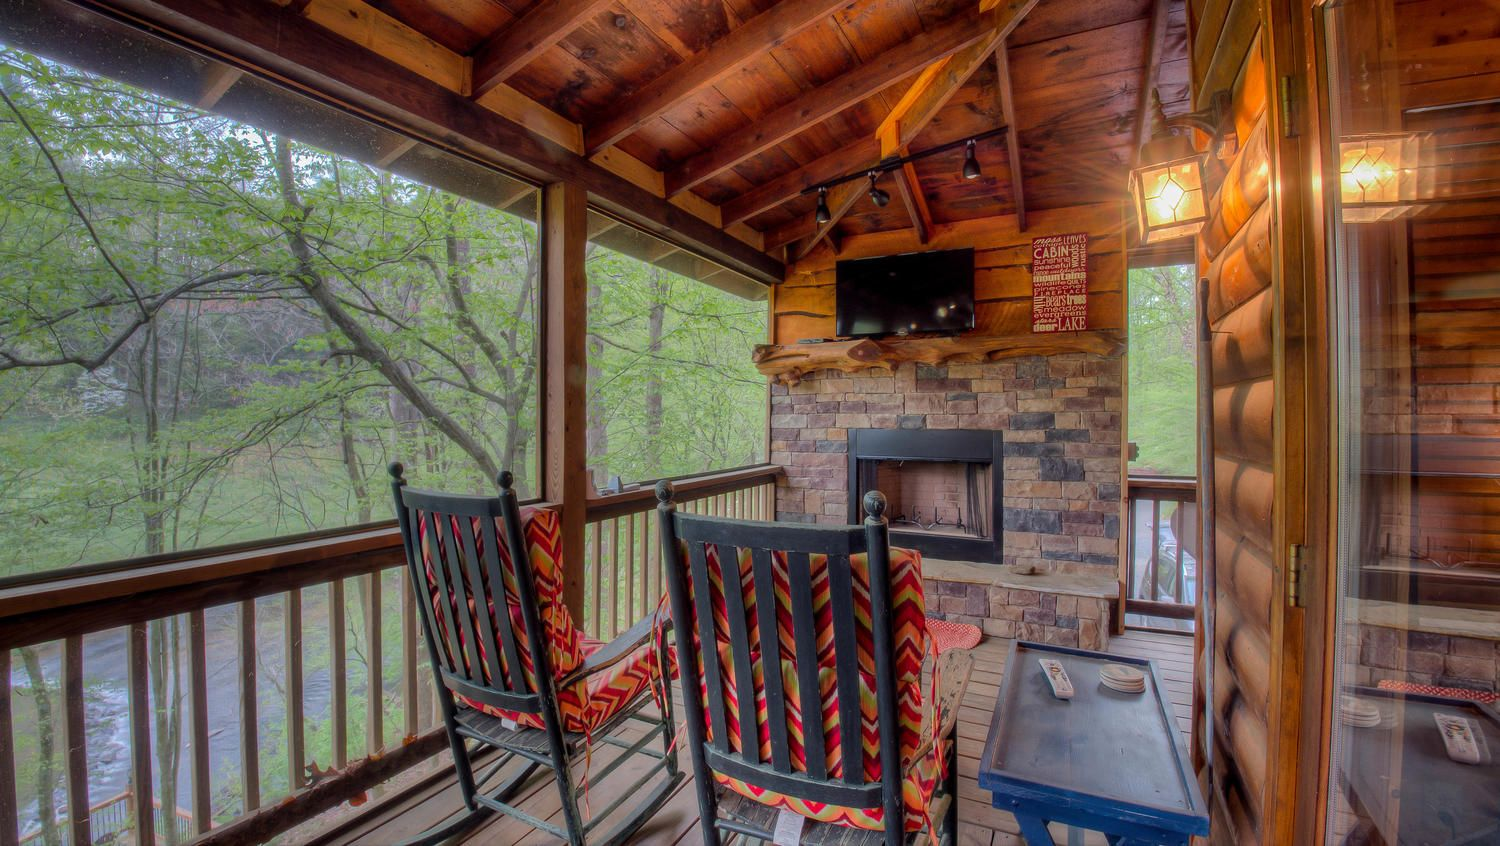 3d Tour In Link Ellijay River Gorgeous Outside Fireplace Great Investment Opportunity Call Aj 770 853 5280